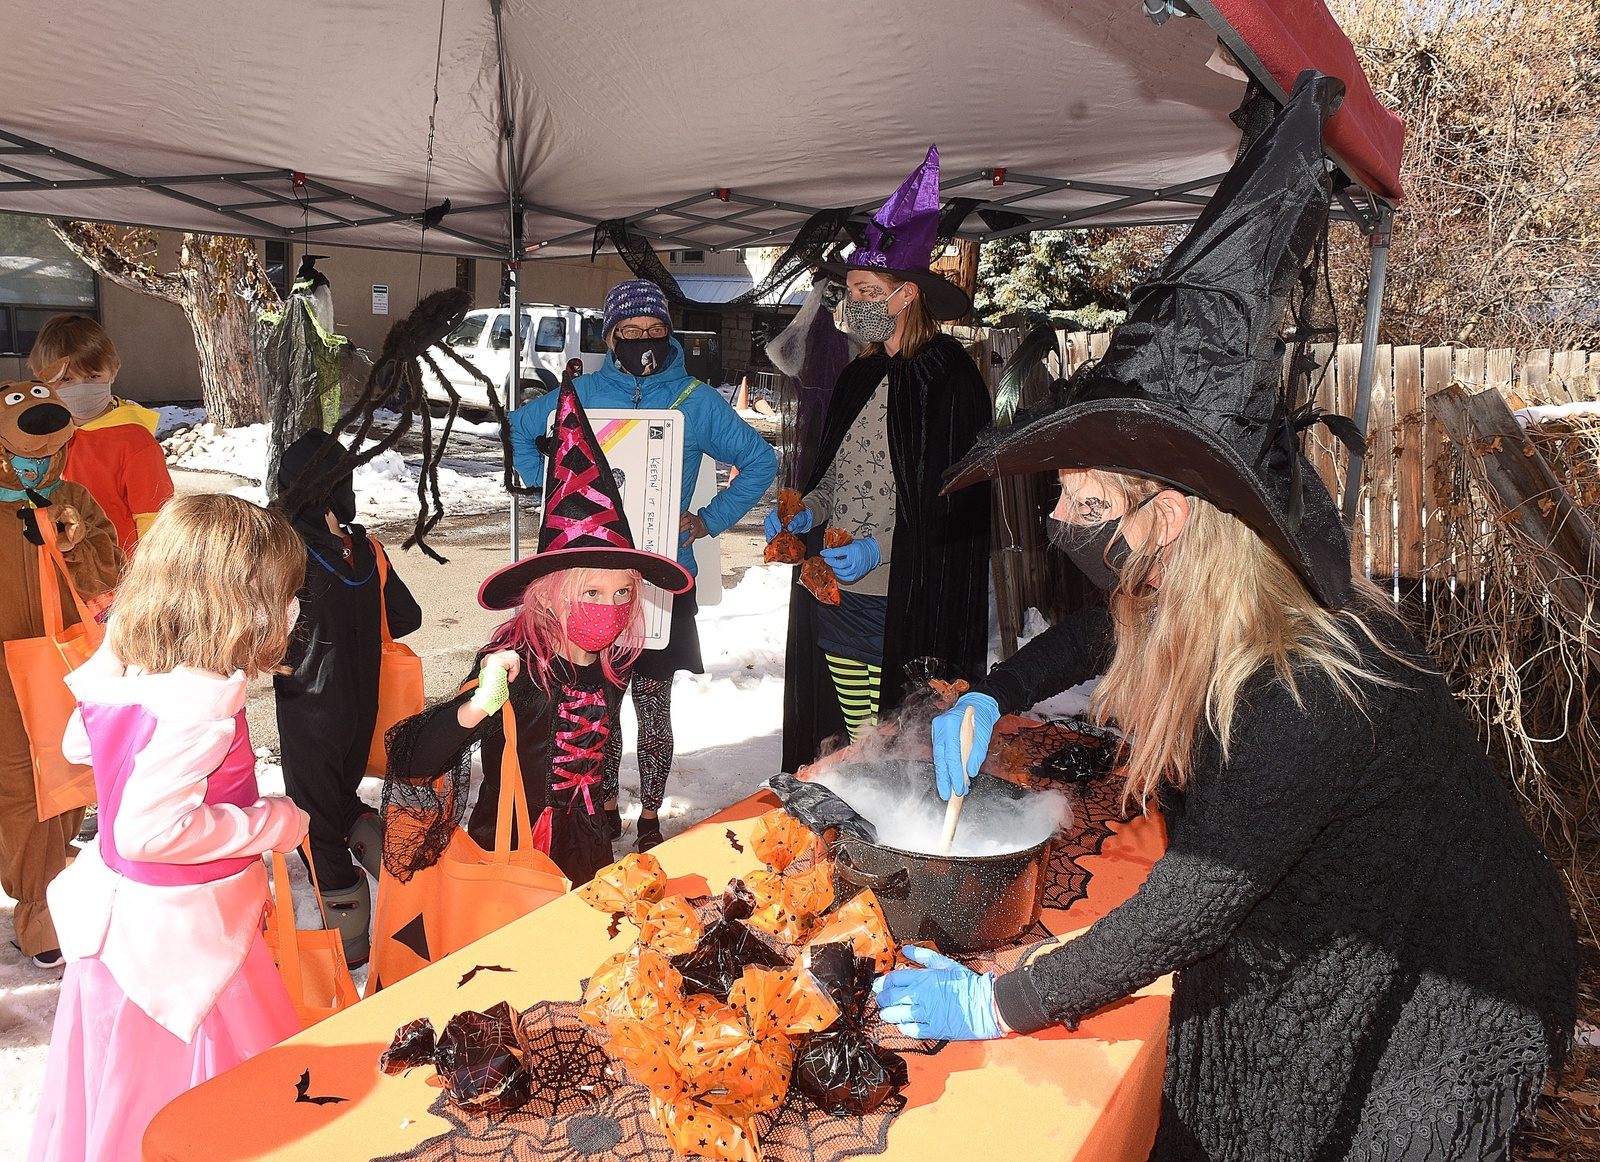 Tinisha Meader stirs her witches brew as first graders at Emerald Mountain School look on Friday morning. The event was held outdoor with each class taking a turn at visiting distanced Halloween stands where teachers and portents safely handed out treats to the costumed children who were all wearing protective masks.